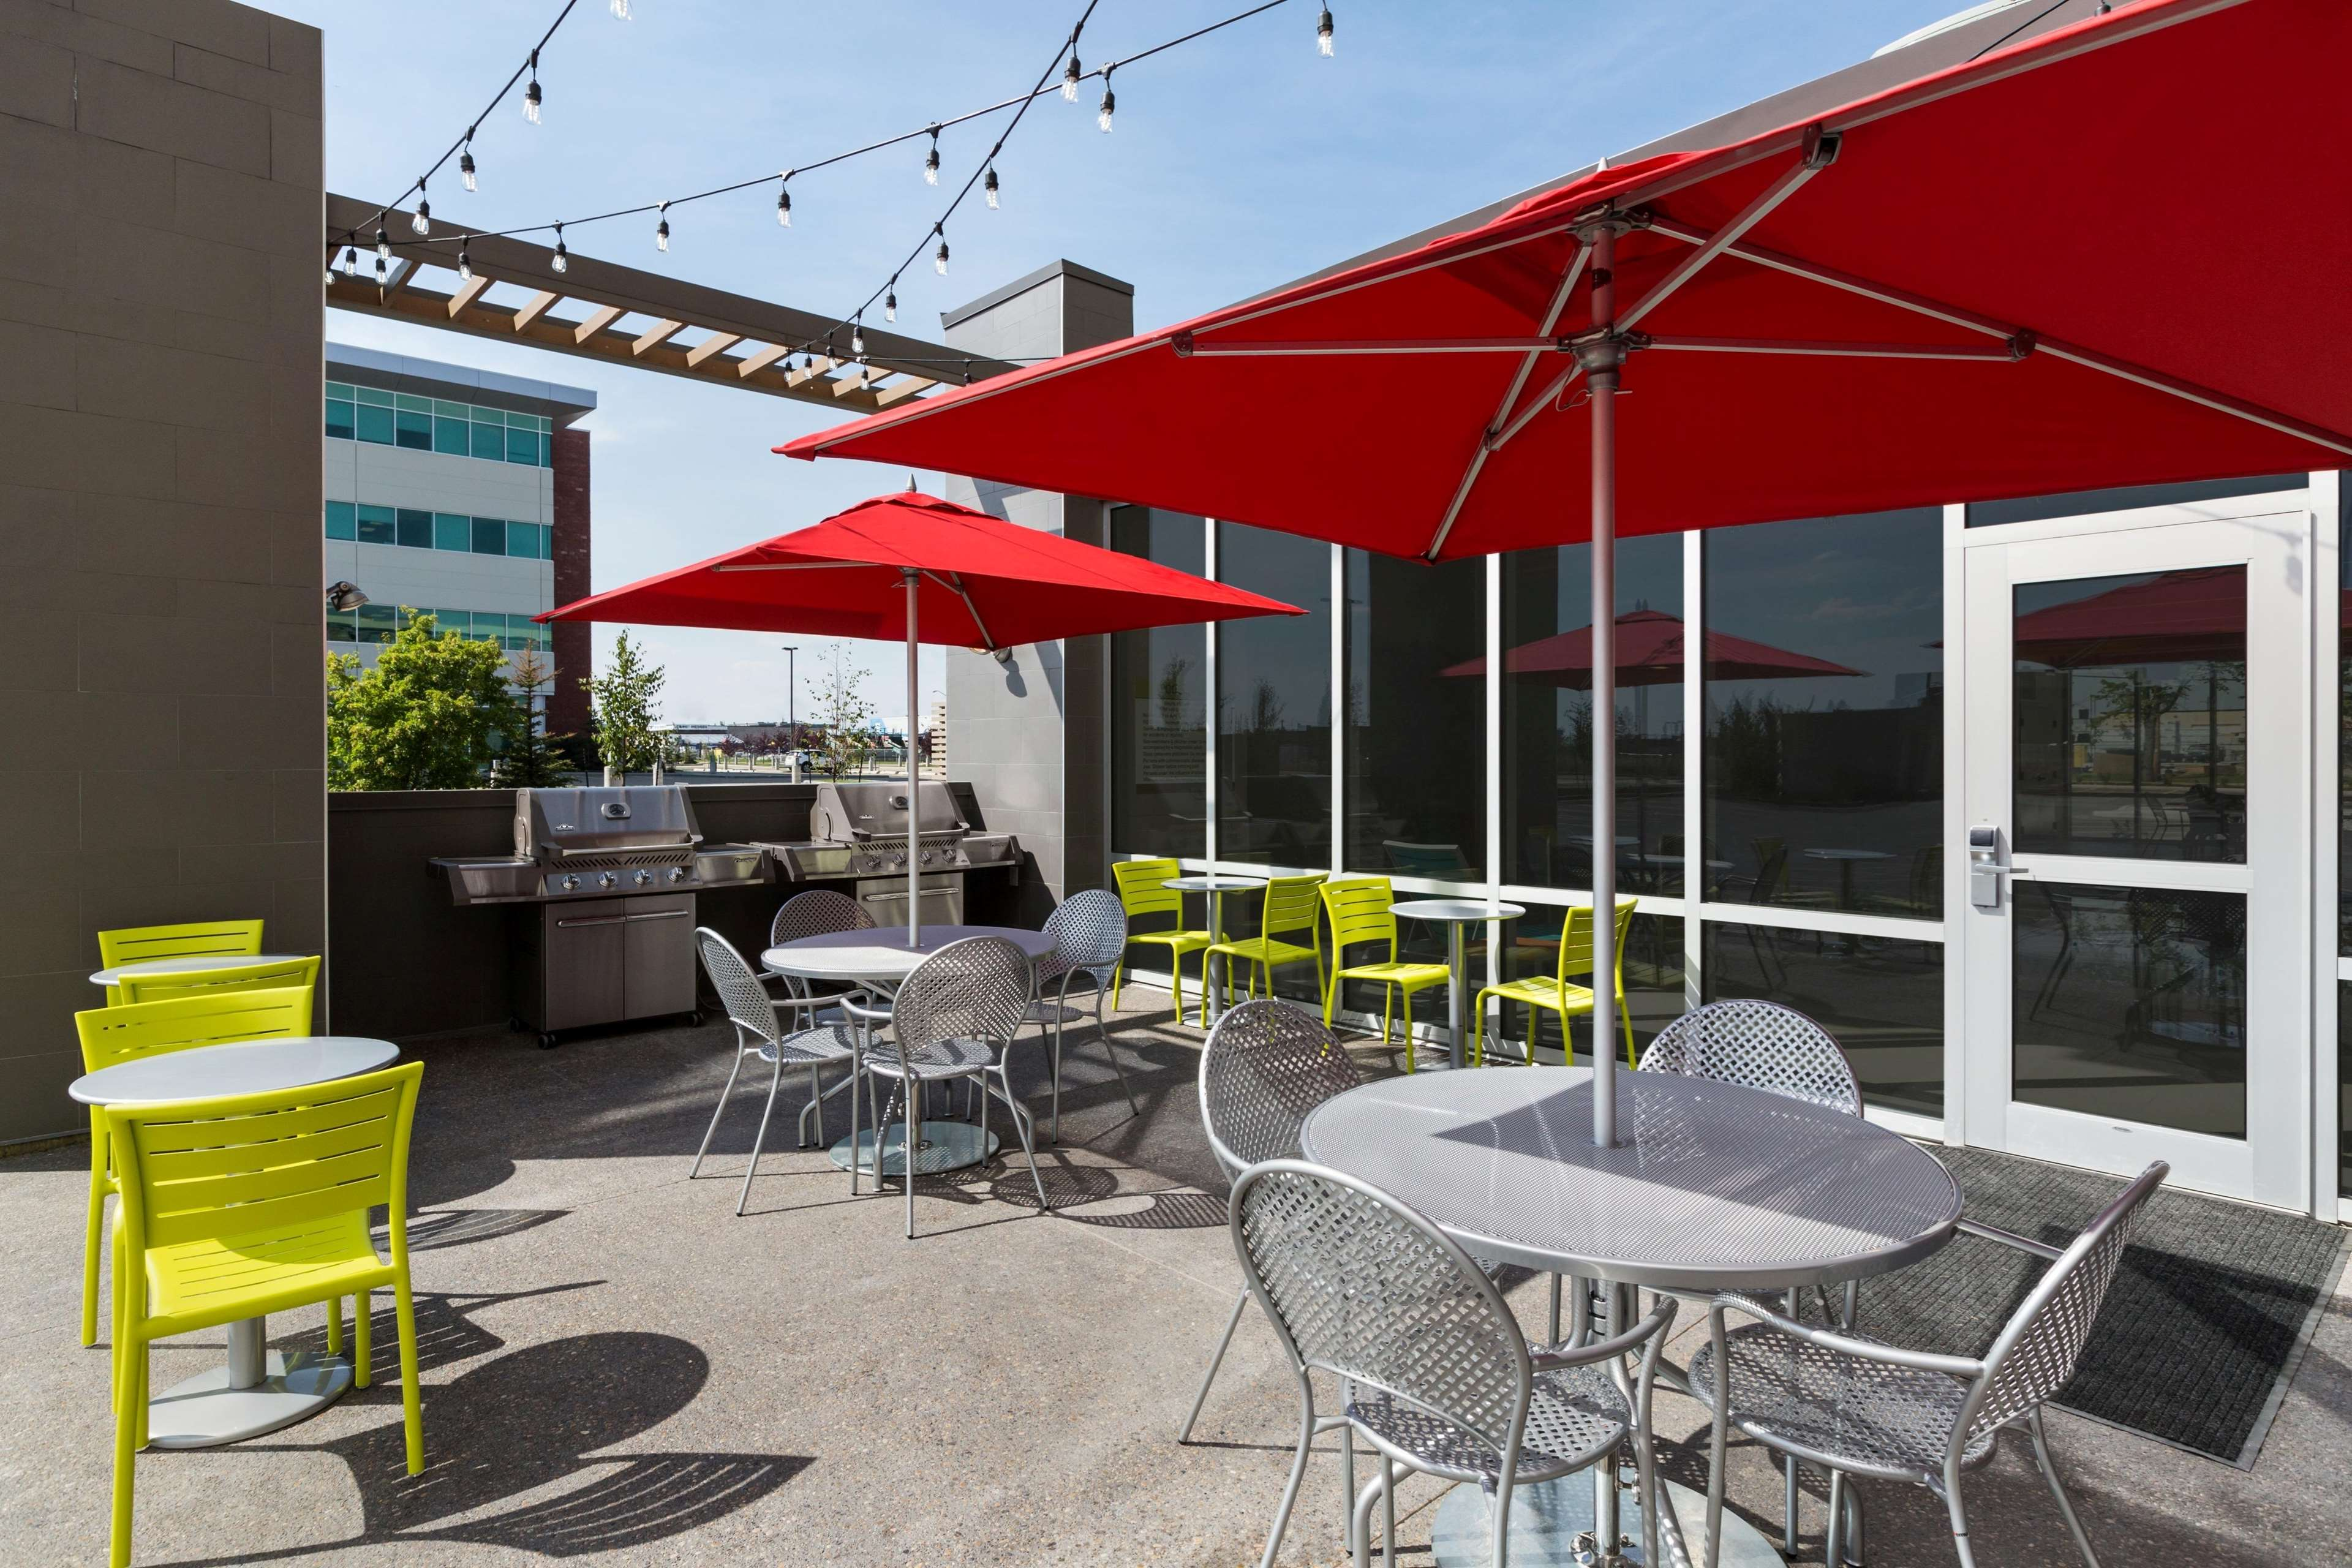 Home2 Suites by Hilton West Edmonton, Alberta, Canada in Edmonton: Patio with BBQ Grill Daytime